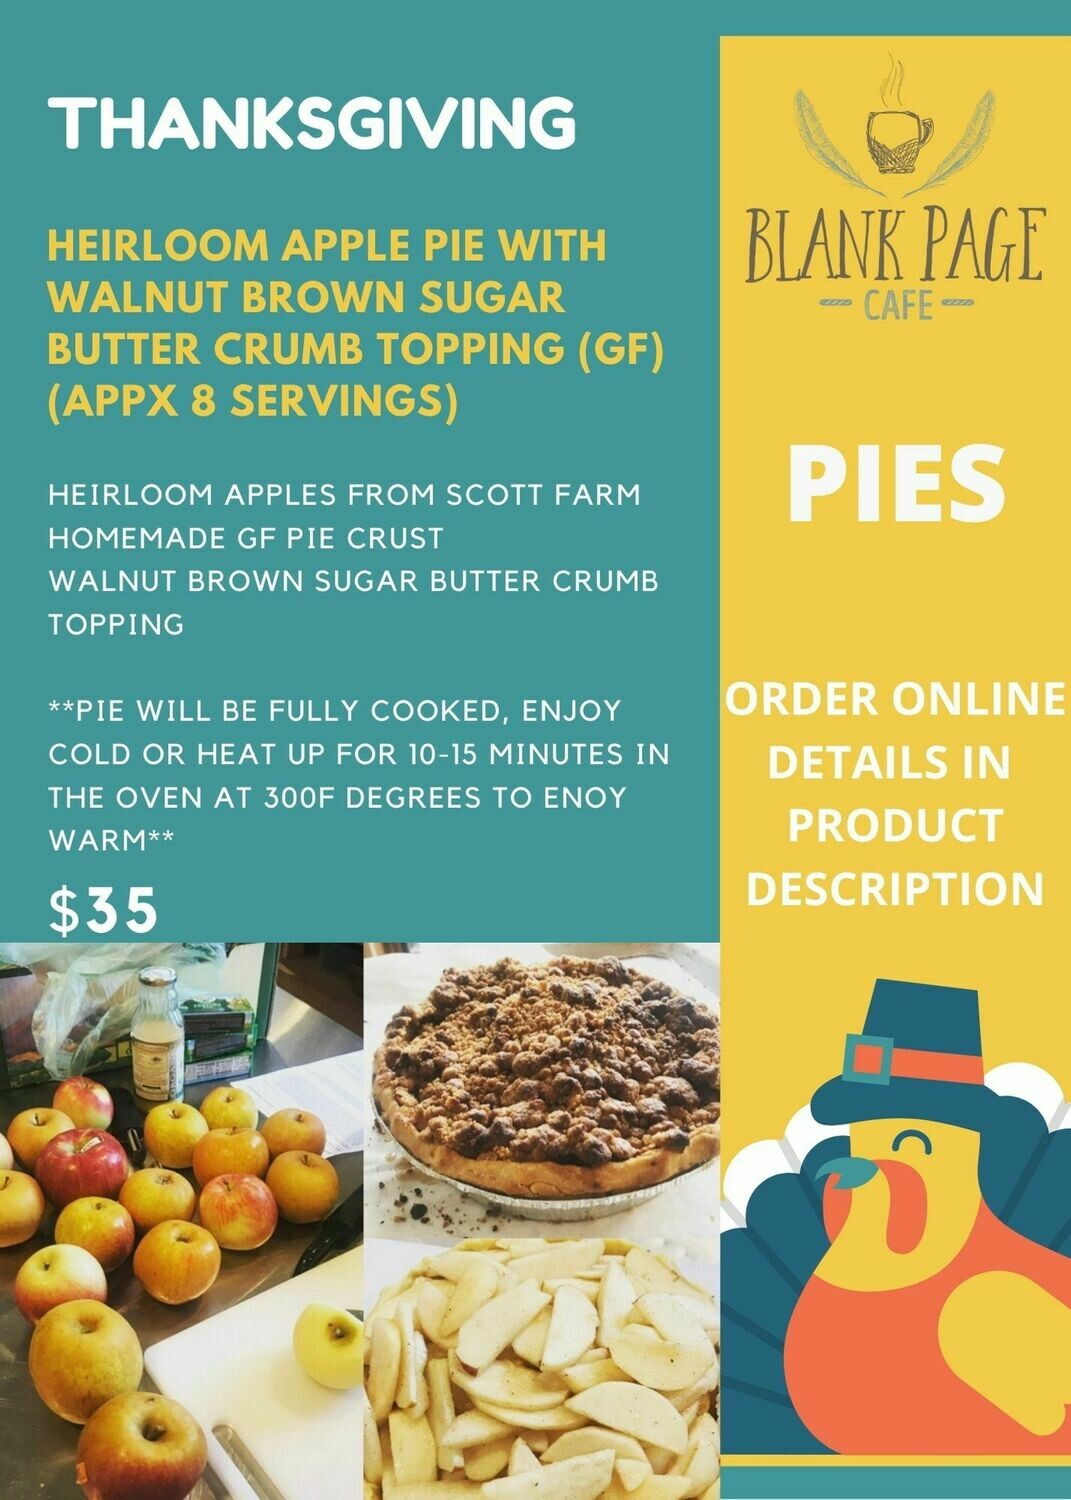 THANKSGIVING PIES!! Heirloom Apple Pie w/ Walnut Brown Sugar Crumb Topping (GF)